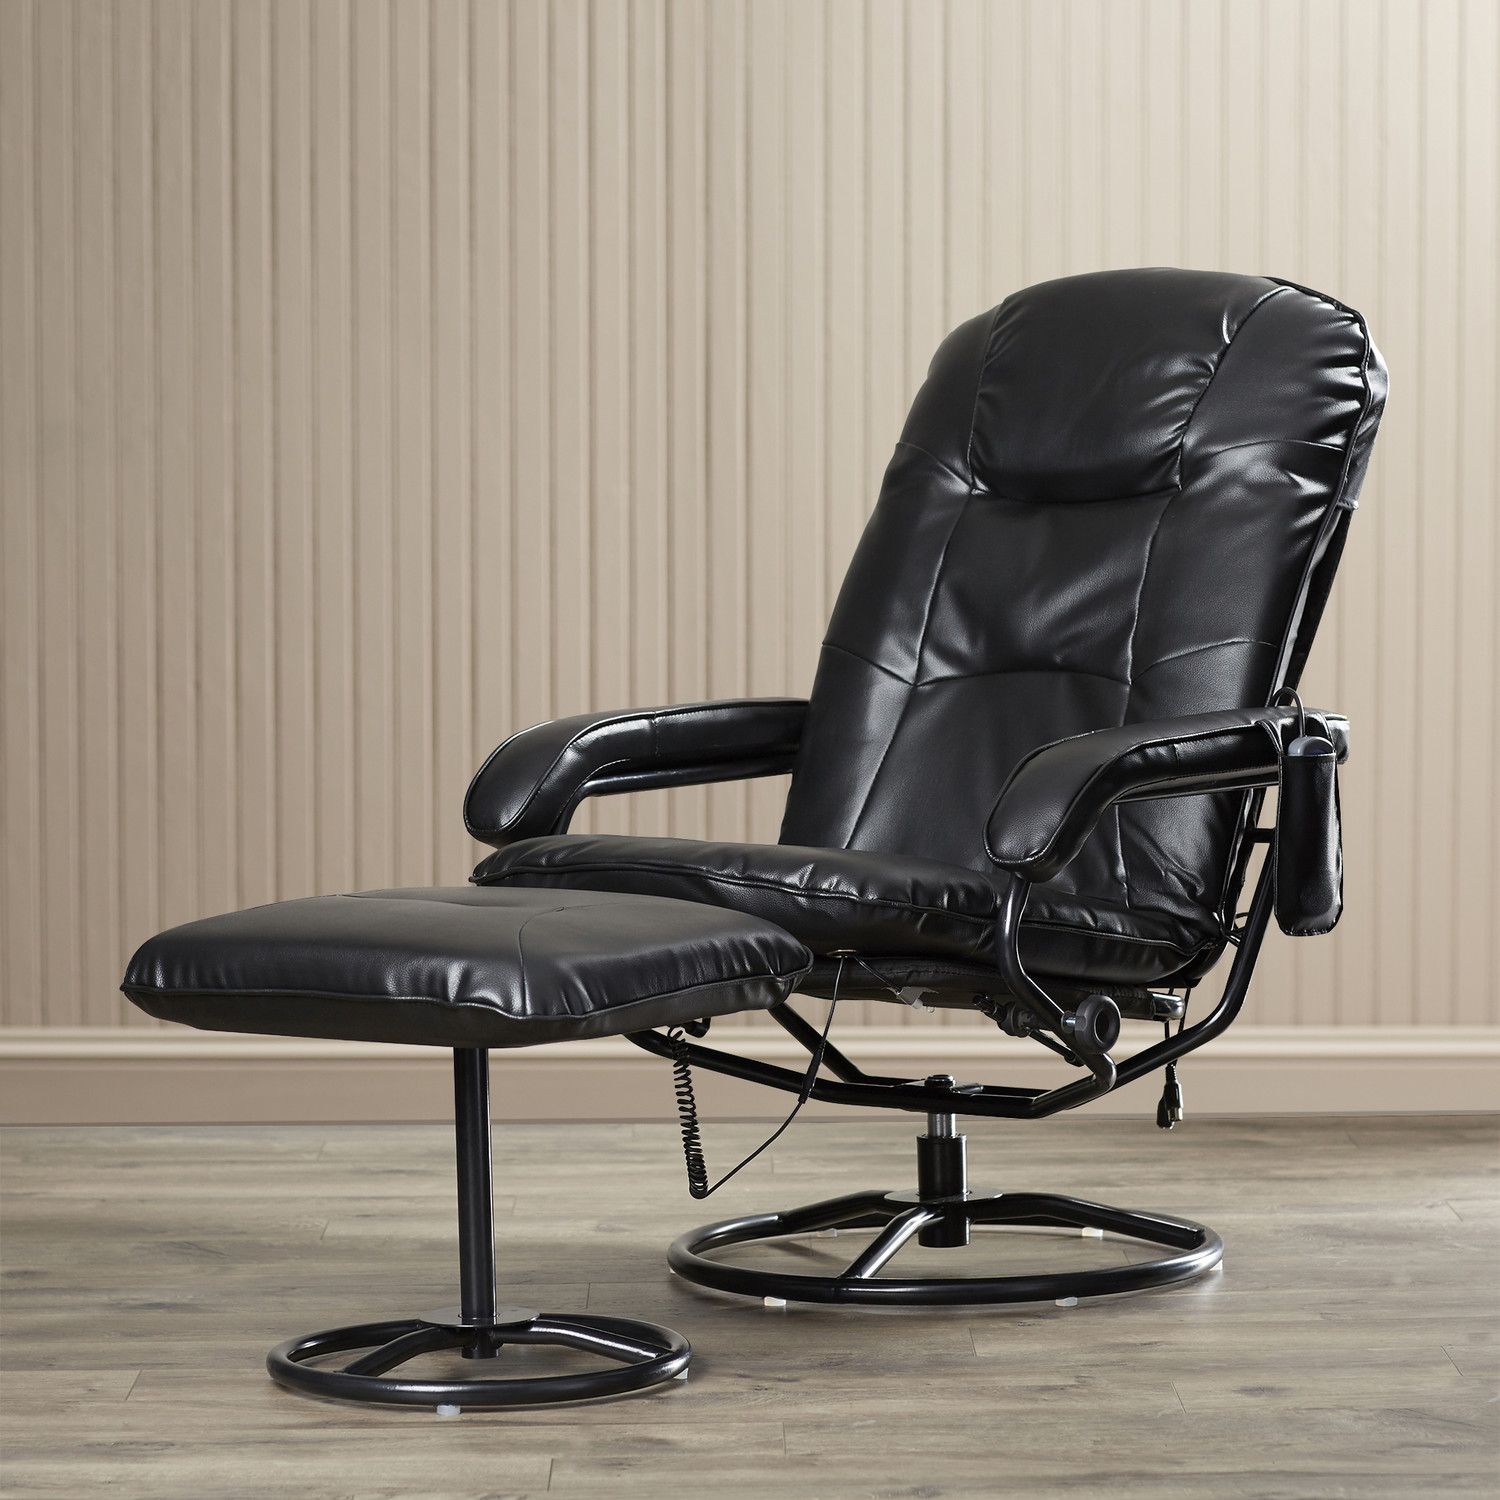 Image of: Recliner Massage Chair Design